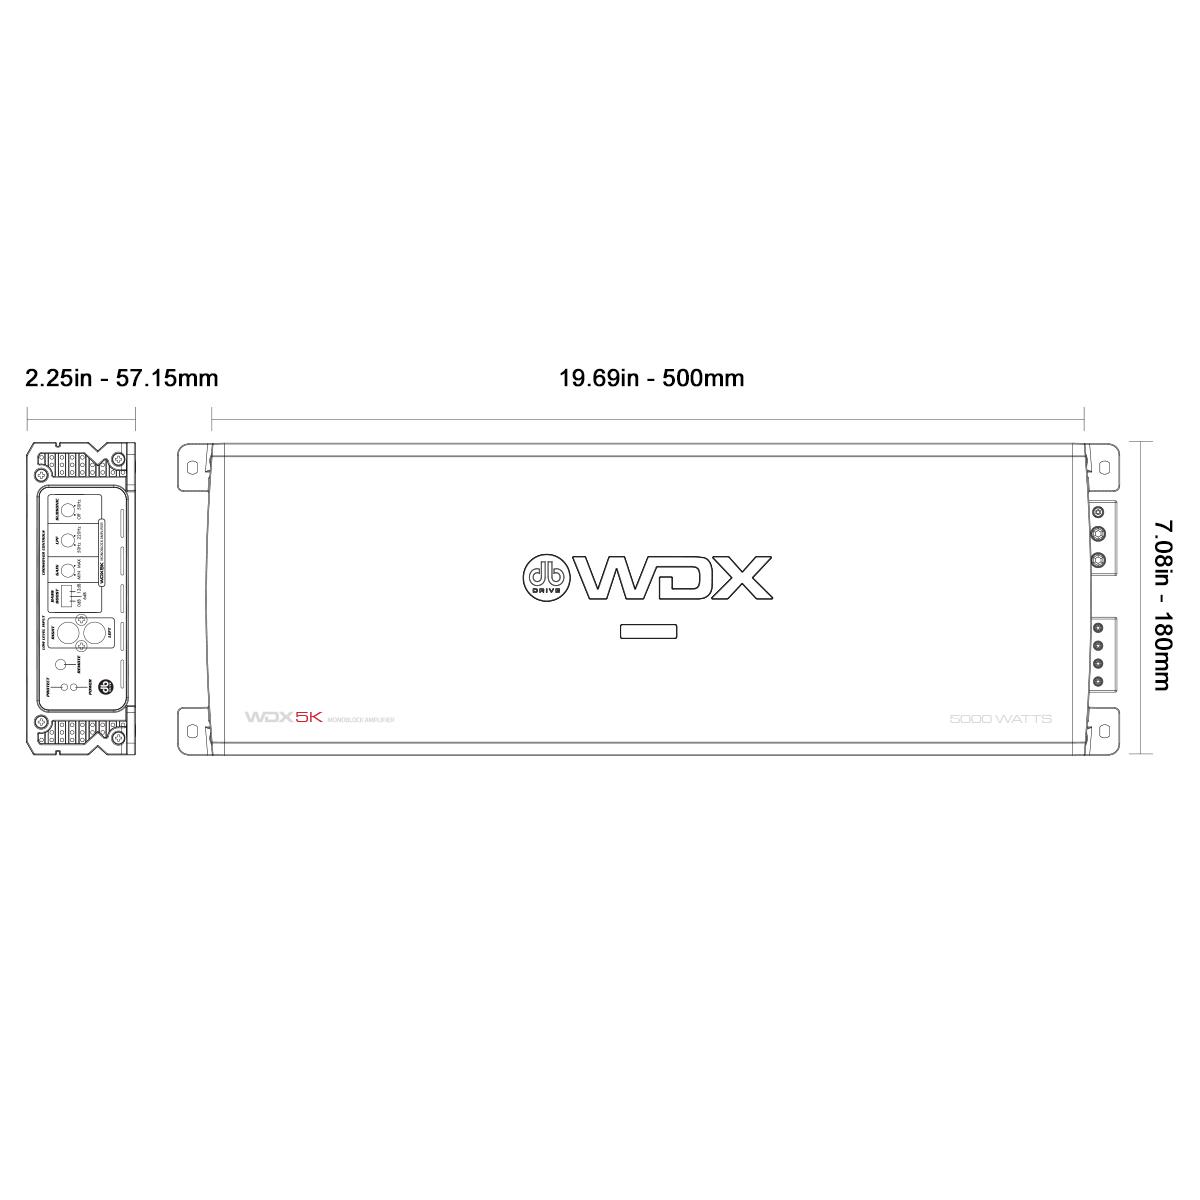 5000 watts amplifier schematic diagrams wdx 5k     db drive  wdx 5k     db drive